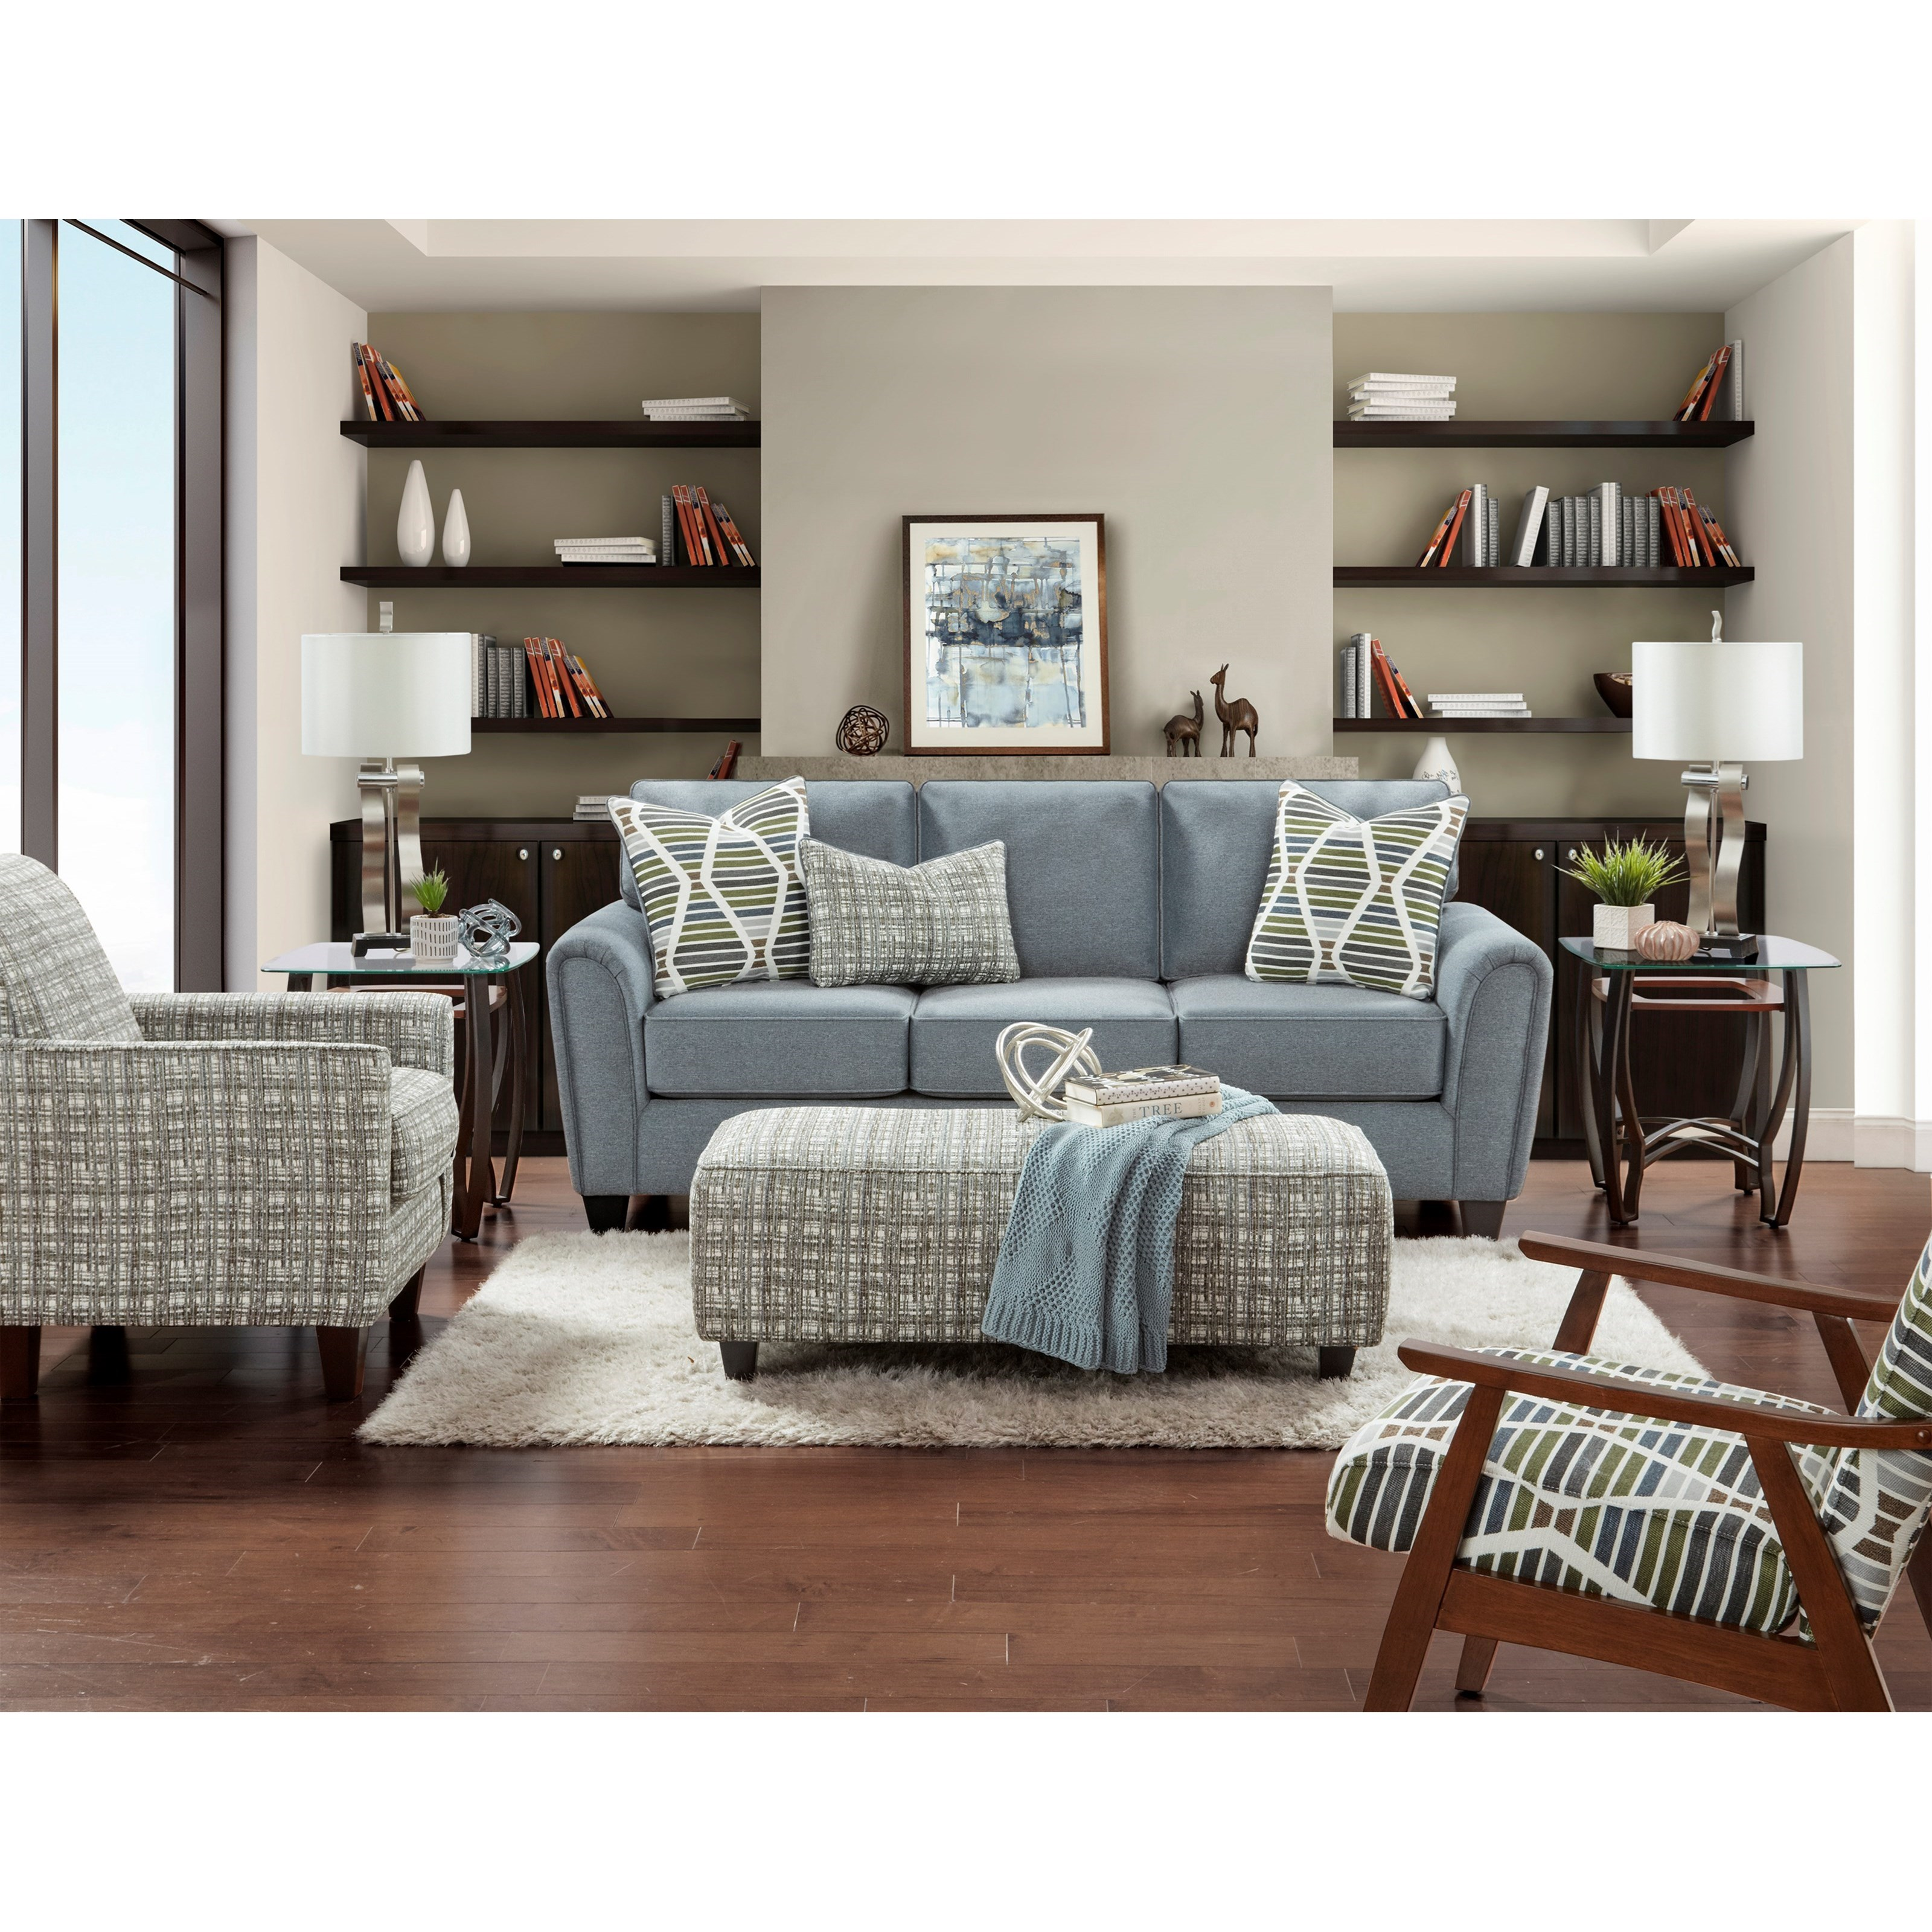 49-00 Living Room Group by Fusion Furniture at Miller Waldrop Furniture and Decor